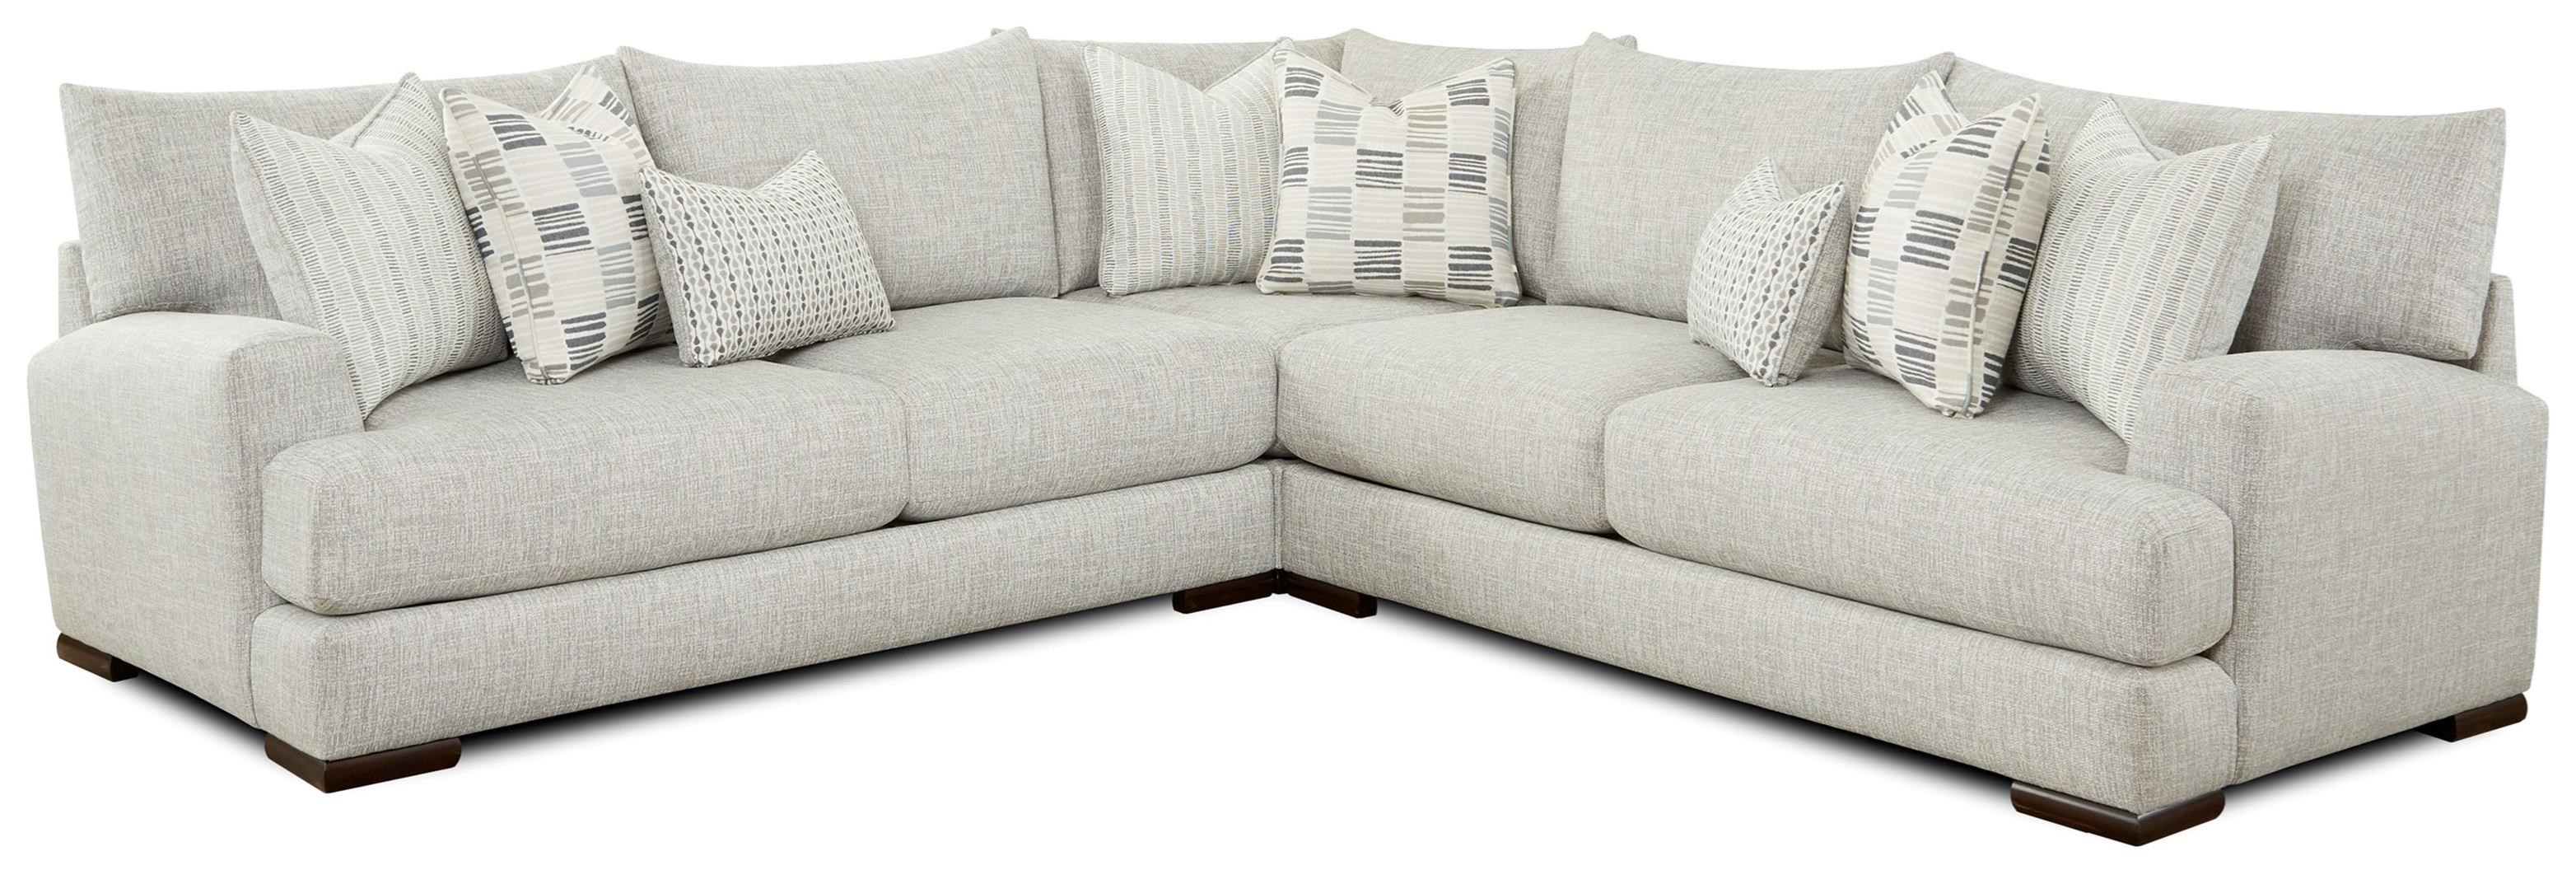 51-00 3-Piece Sectional by VFM Signature at Virginia Furniture Market